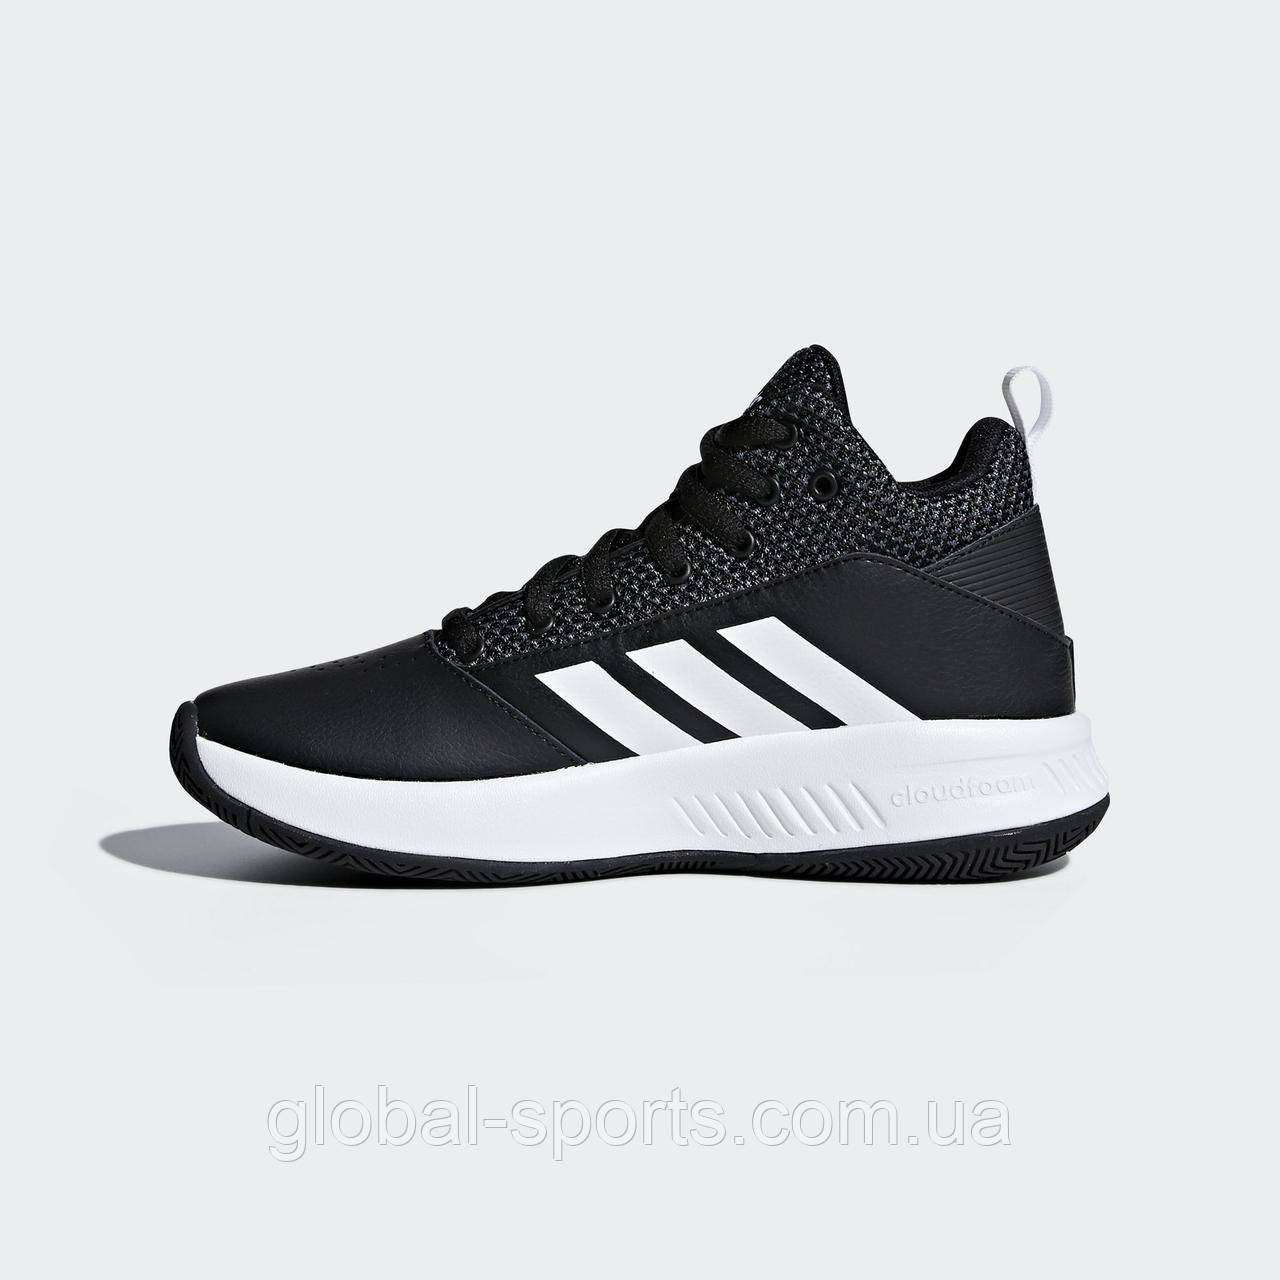 f84e13e7 Детские кроссовки Adidas Performance Cloudfoam Ilation Mid 2.0 (Артикул:  DB1465), ...